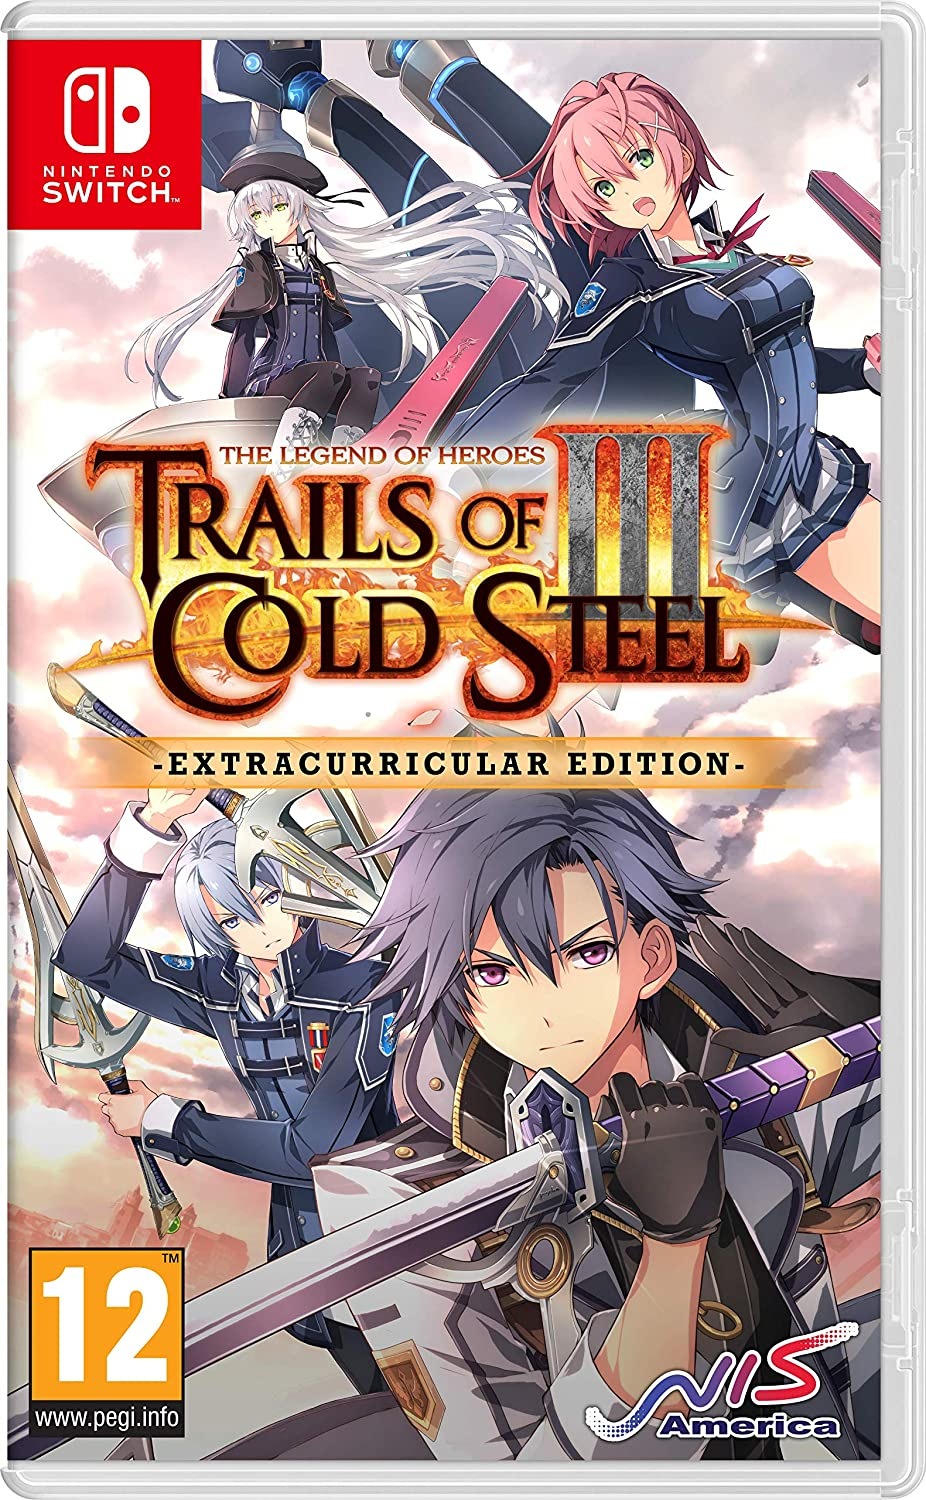 THE LEGEND OF HEROES: TRAILS OF COLD STEEL III 91Zwf8NVVdL._AC_SL1500_